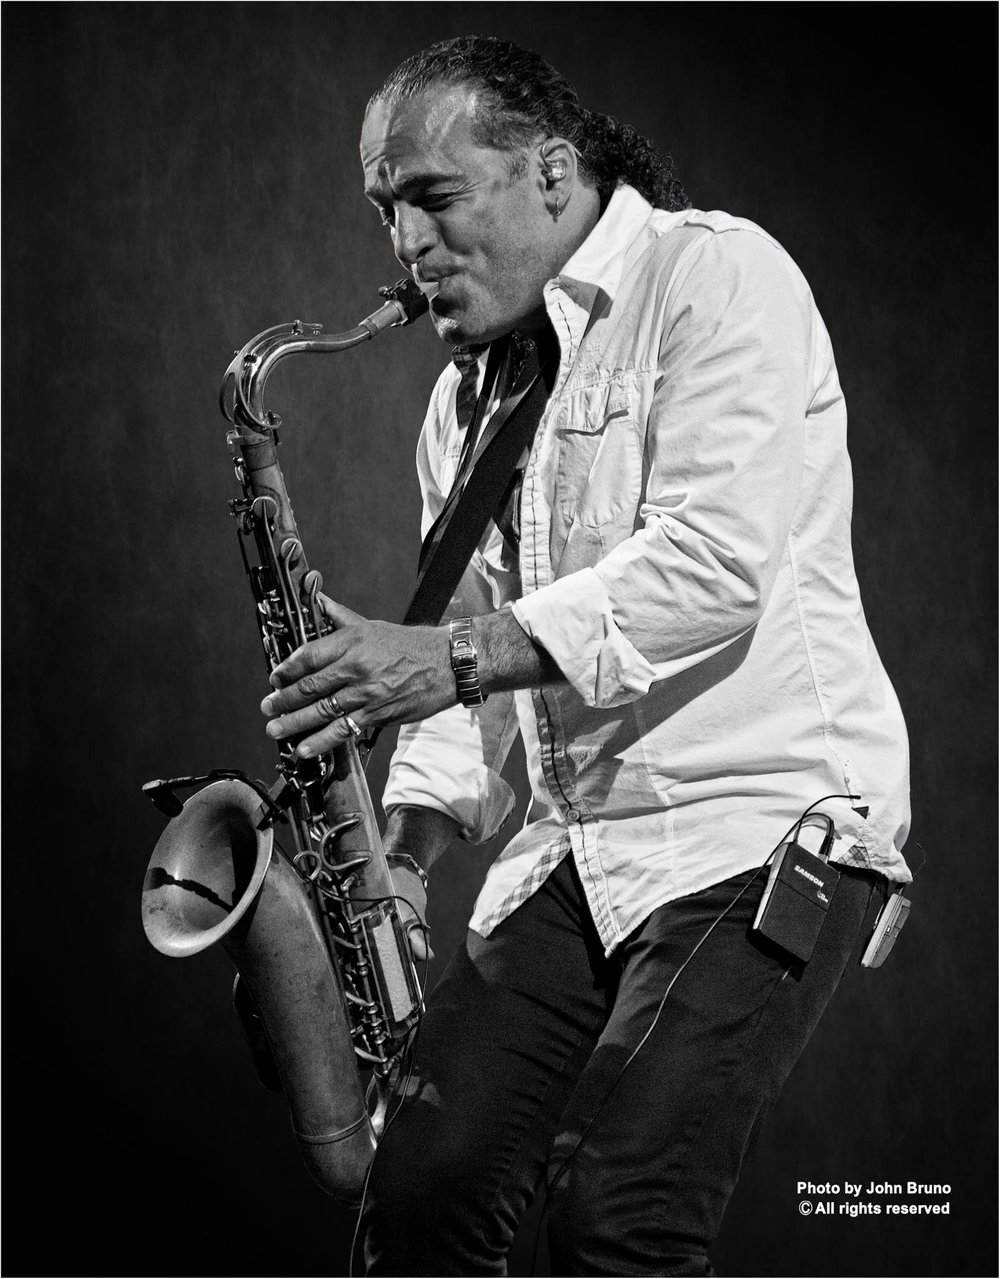 John Scarpulla    Saxophone - an original cast member of Billy's Broadway Musical Movin Out band.  John has toured with Michael Bolton, Hall & Oats, Diana Ross, Huey Lewis, Tower of Power, a bunch others and was part of the All Star Horn Section for Billy Joel's Last Play at Shea Stadium Concerts.